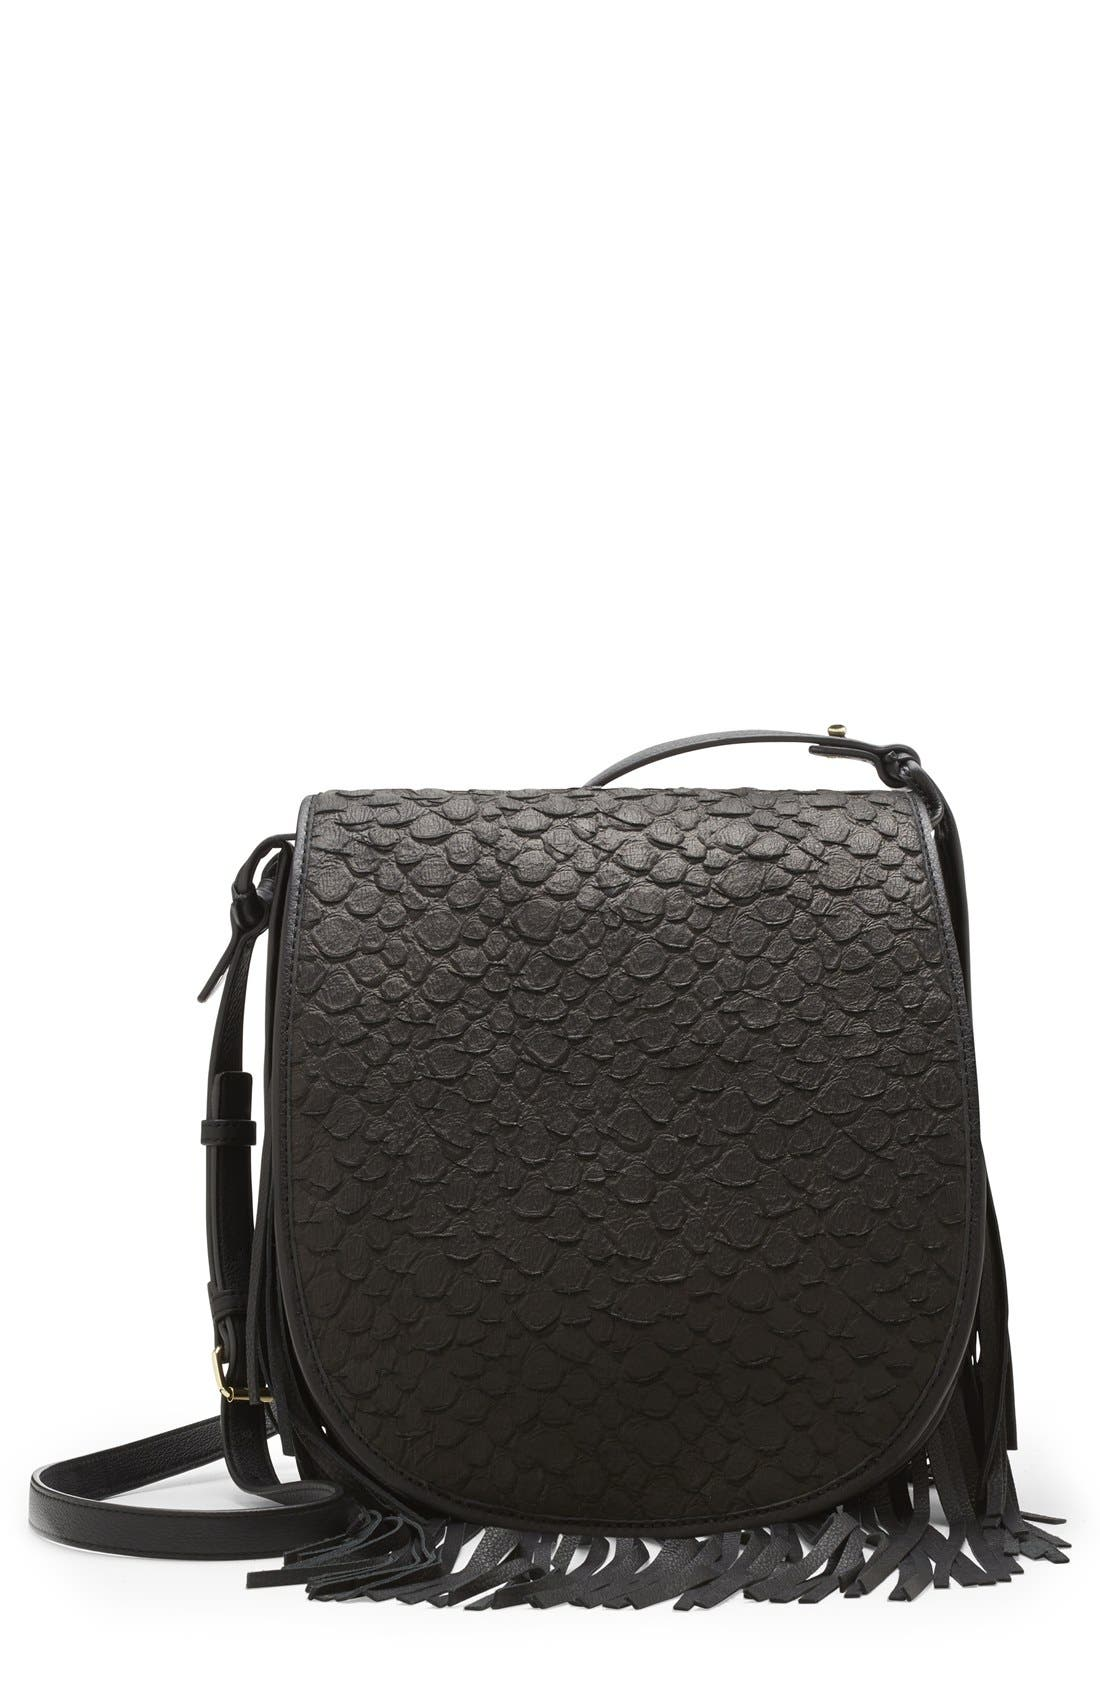 Alternate Image 1 Selected - Vince Camuto 'Andy' Crossbody Bag